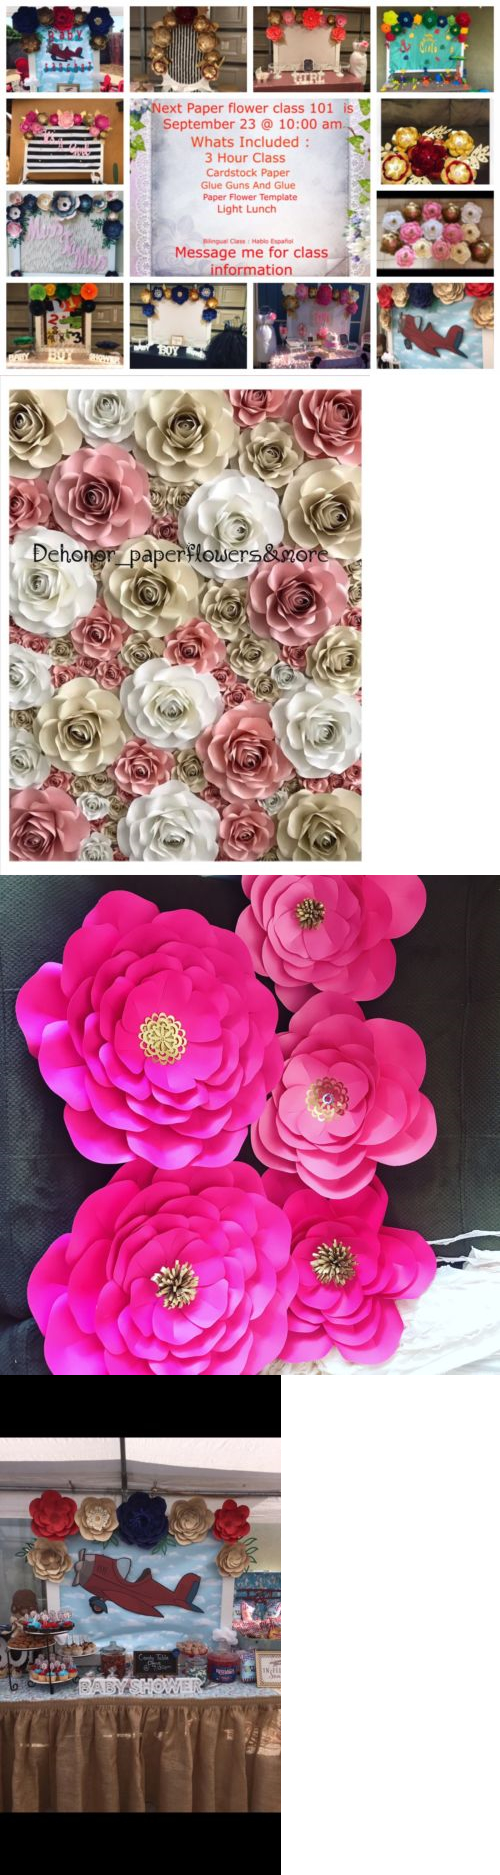 Flower embellishments 160734 paper flowers class buy it now only flower embellishments 160734 paper flowers class buy it now only 50 on mightylinksfo